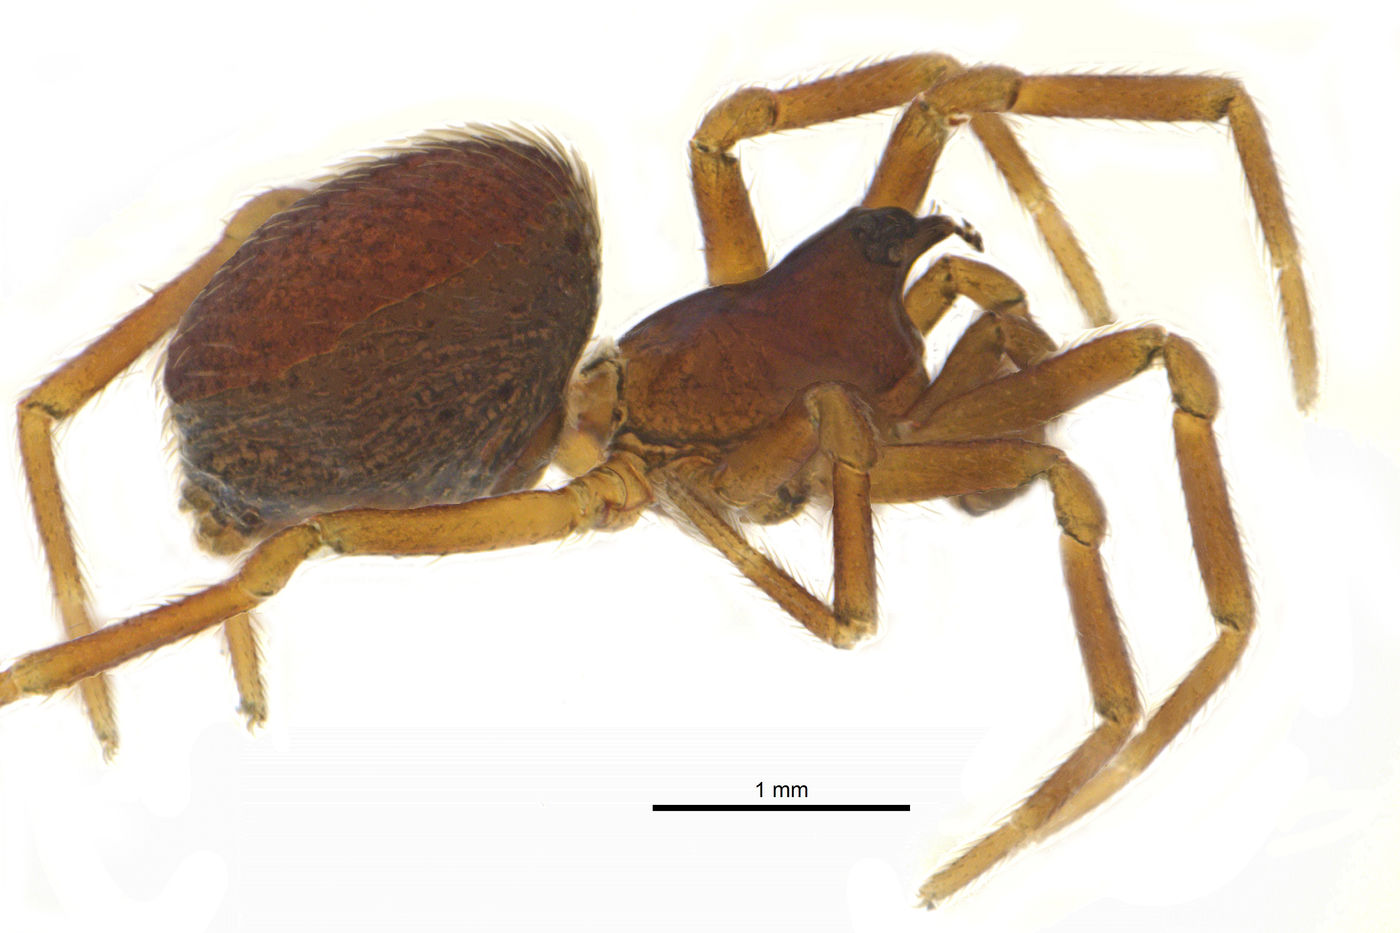 Full body of a male Dwarf Spider, Floricomus-rostratus.